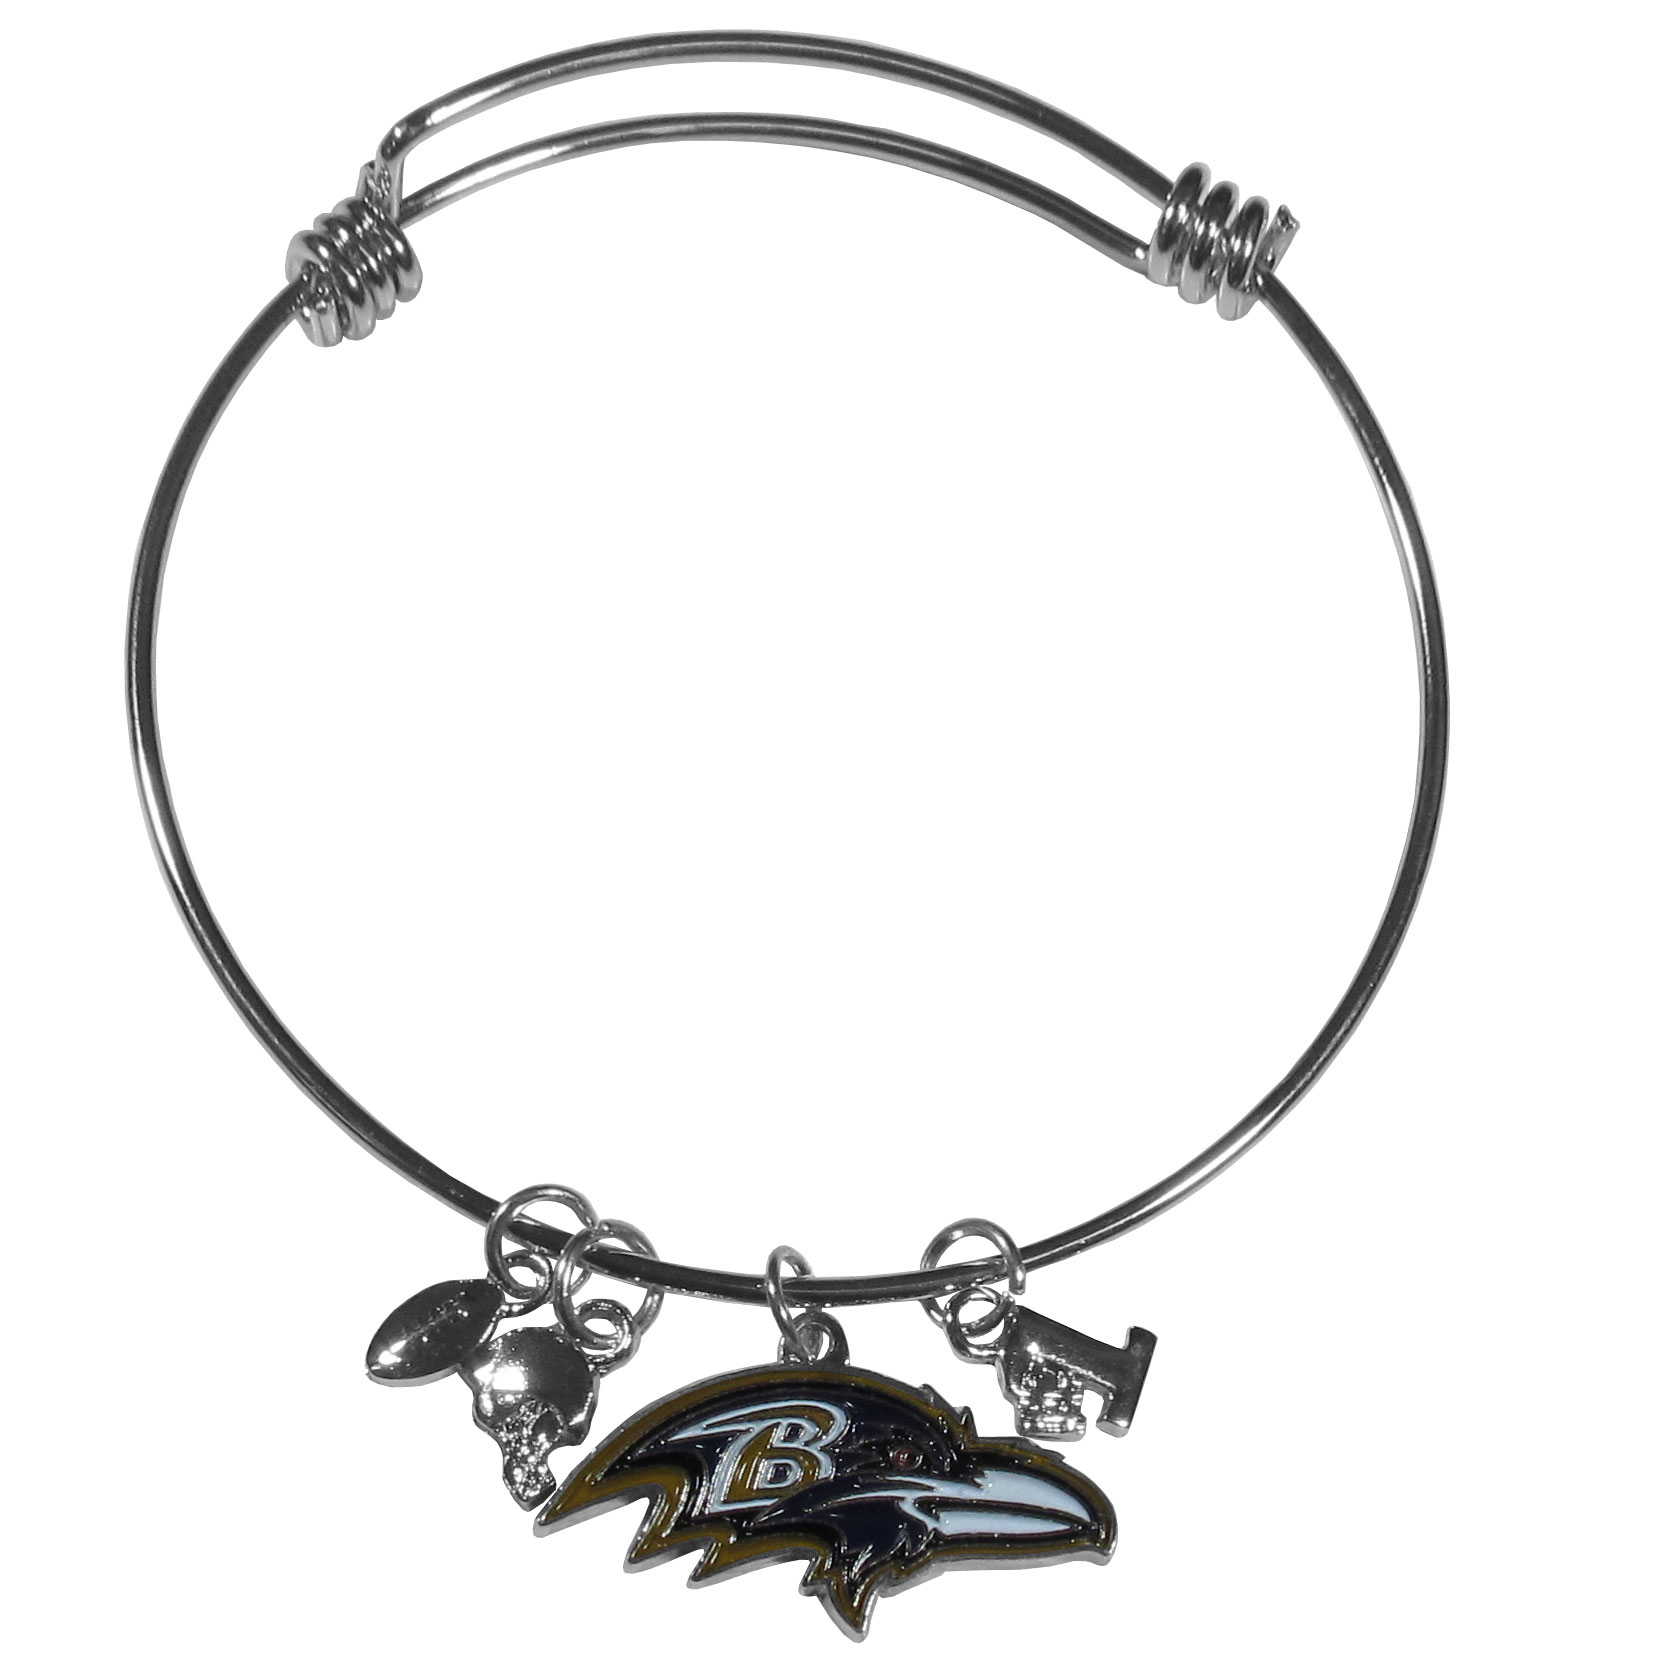 Baltimore Ravens Charm Bangle Bracelet - Adjustable wire bracelets are all the rage and this Baltimore Ravens bracelet matches the popular trend with your beloved team. The bracelet features 4 charms in total, each feature exceptional detail and the team charm has enameled team colors.